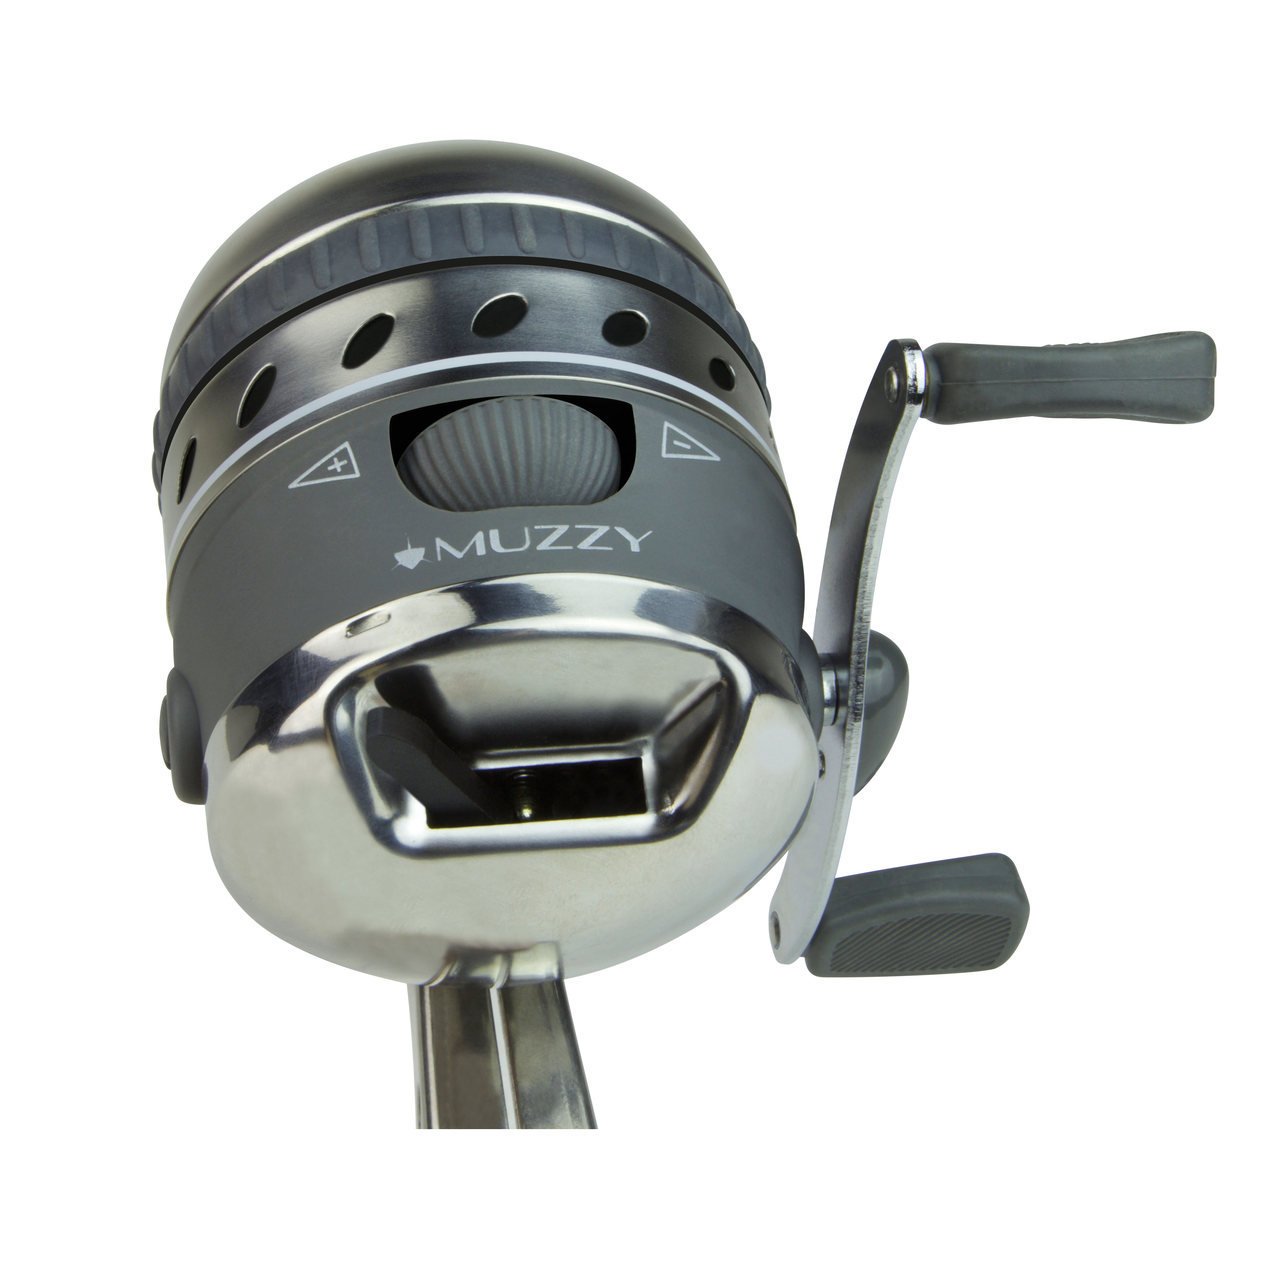 Muzzy xd pro spin style reel diamond archery for Bow fishing reel